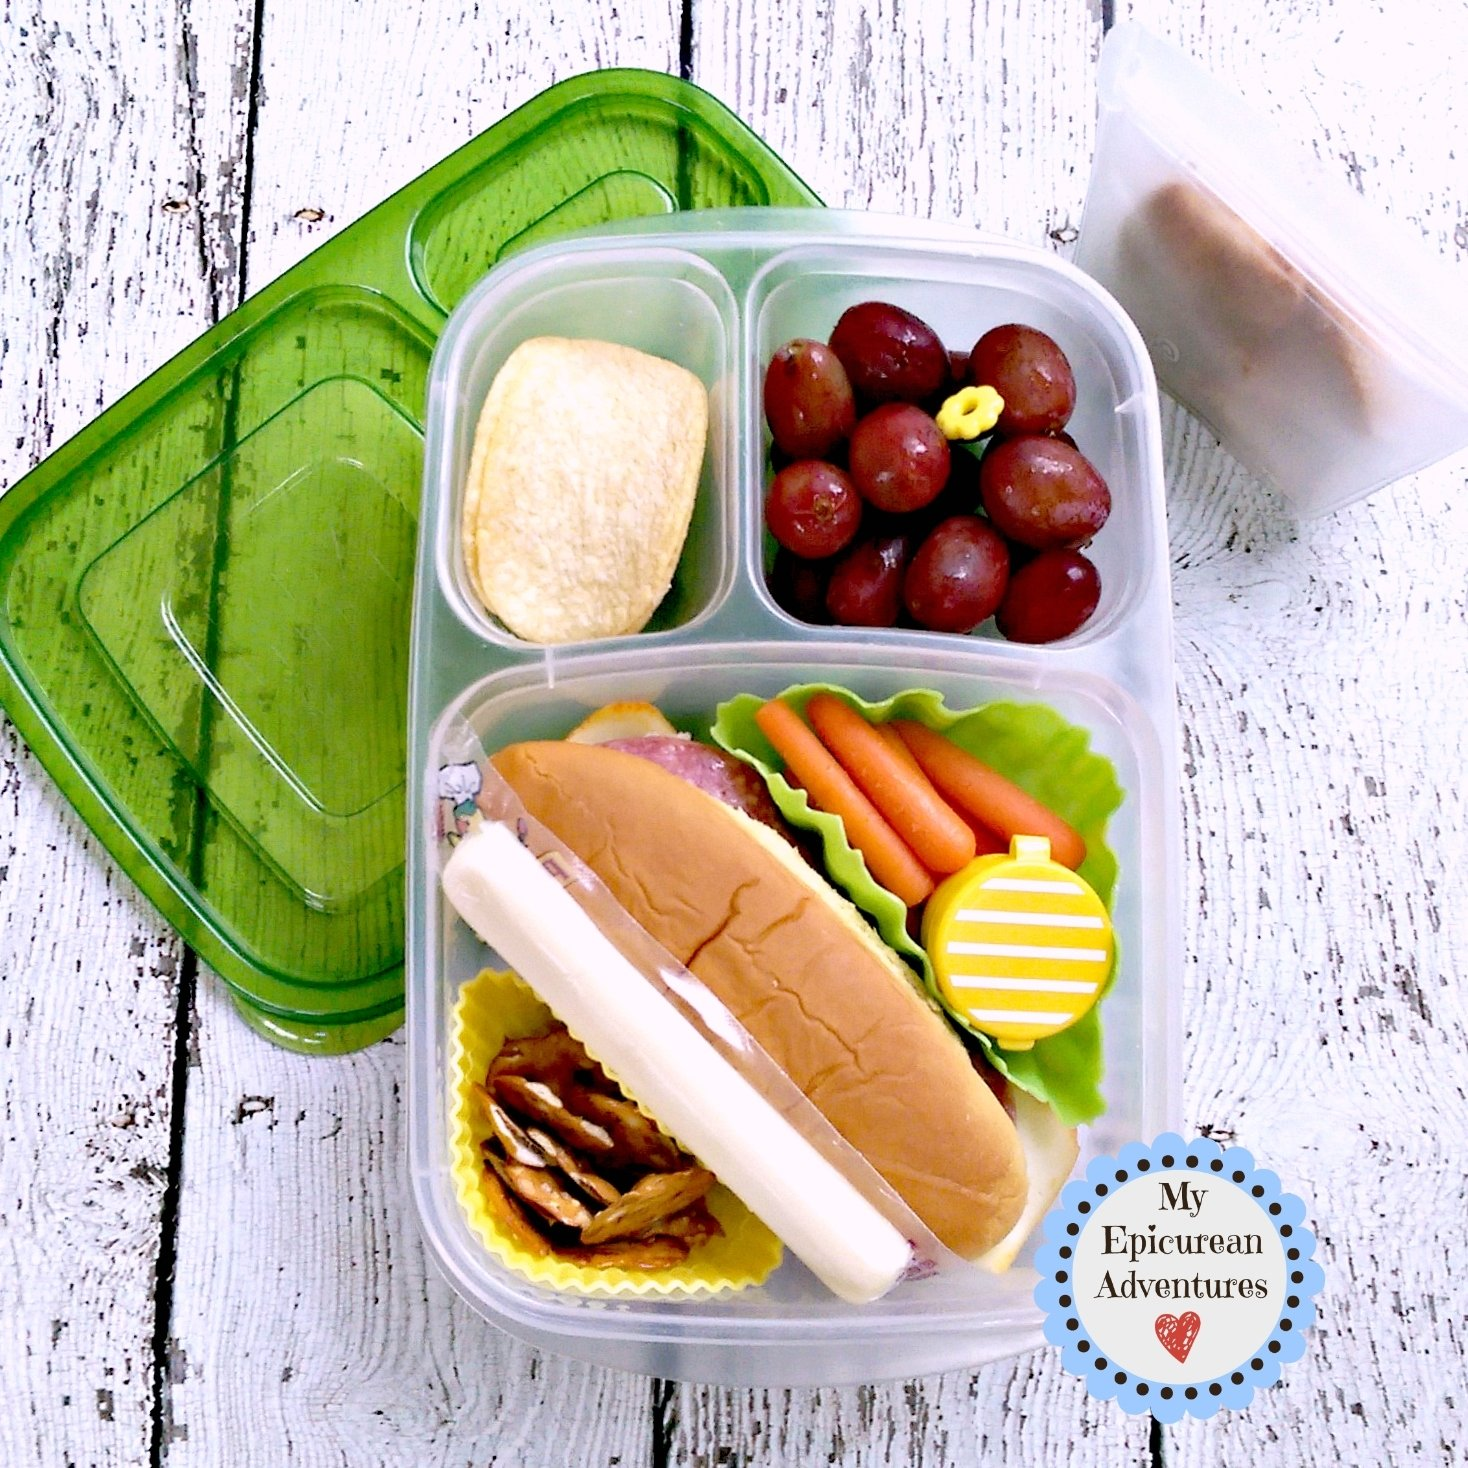 10 Great Lunch Box Ideas For Toddlers 15 simple and quick school launch ideas to pack for your kids how 2021